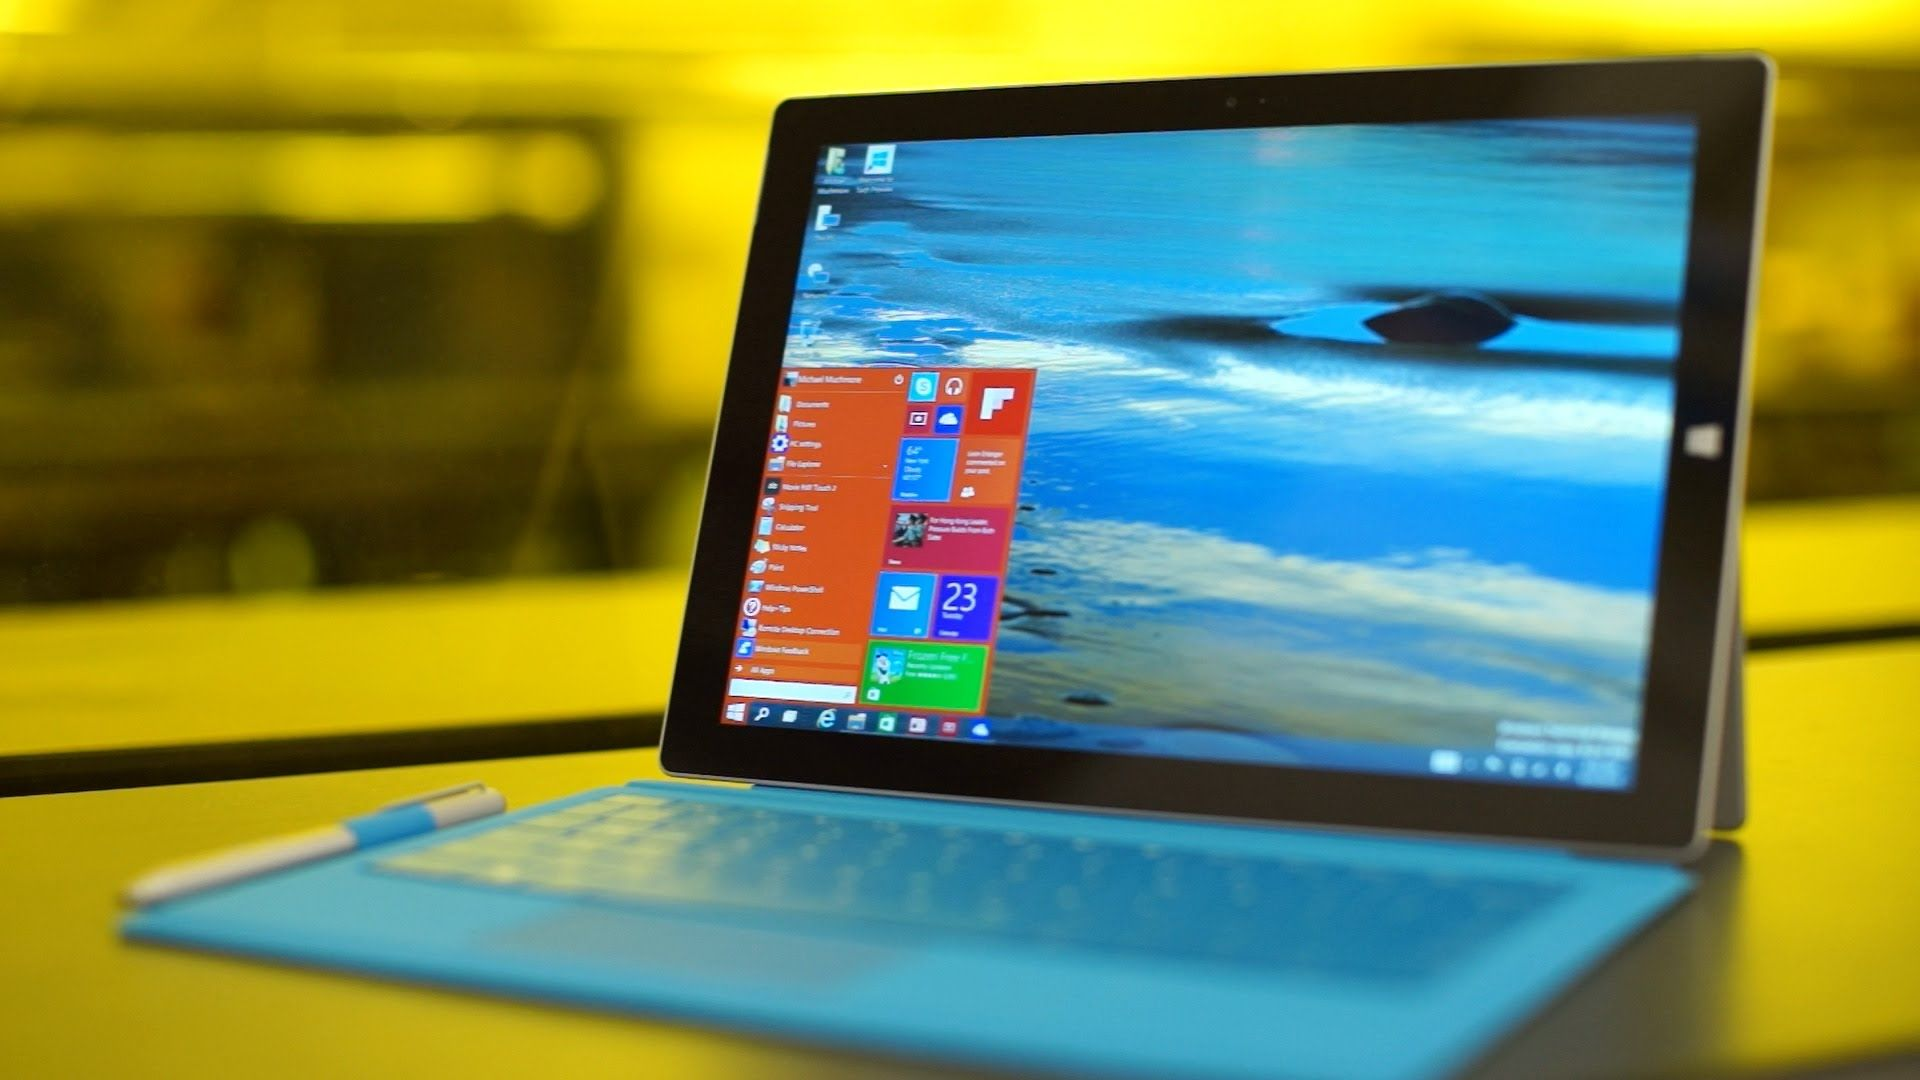 windows 10 technical preview on surface pro 3 (pc mag